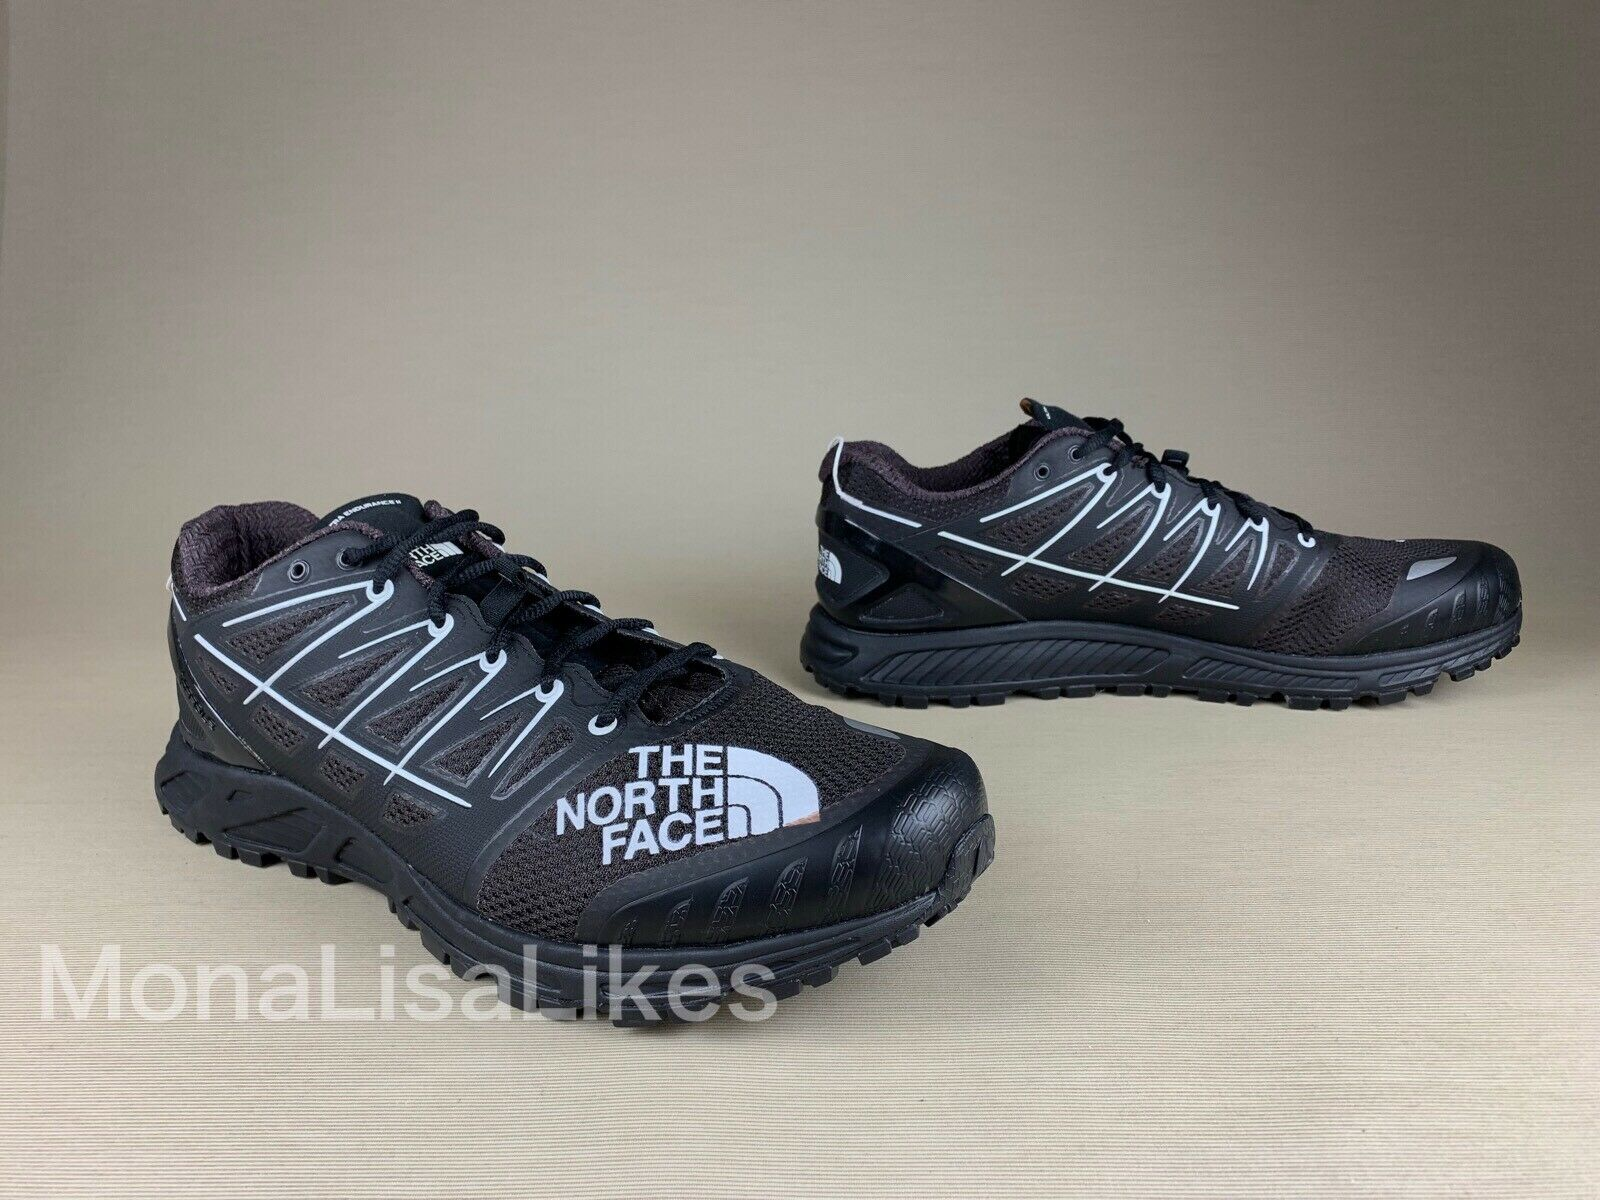 New THE NORTH FACE Ultra Endurance II Black Hiking shoes Sneakers 12